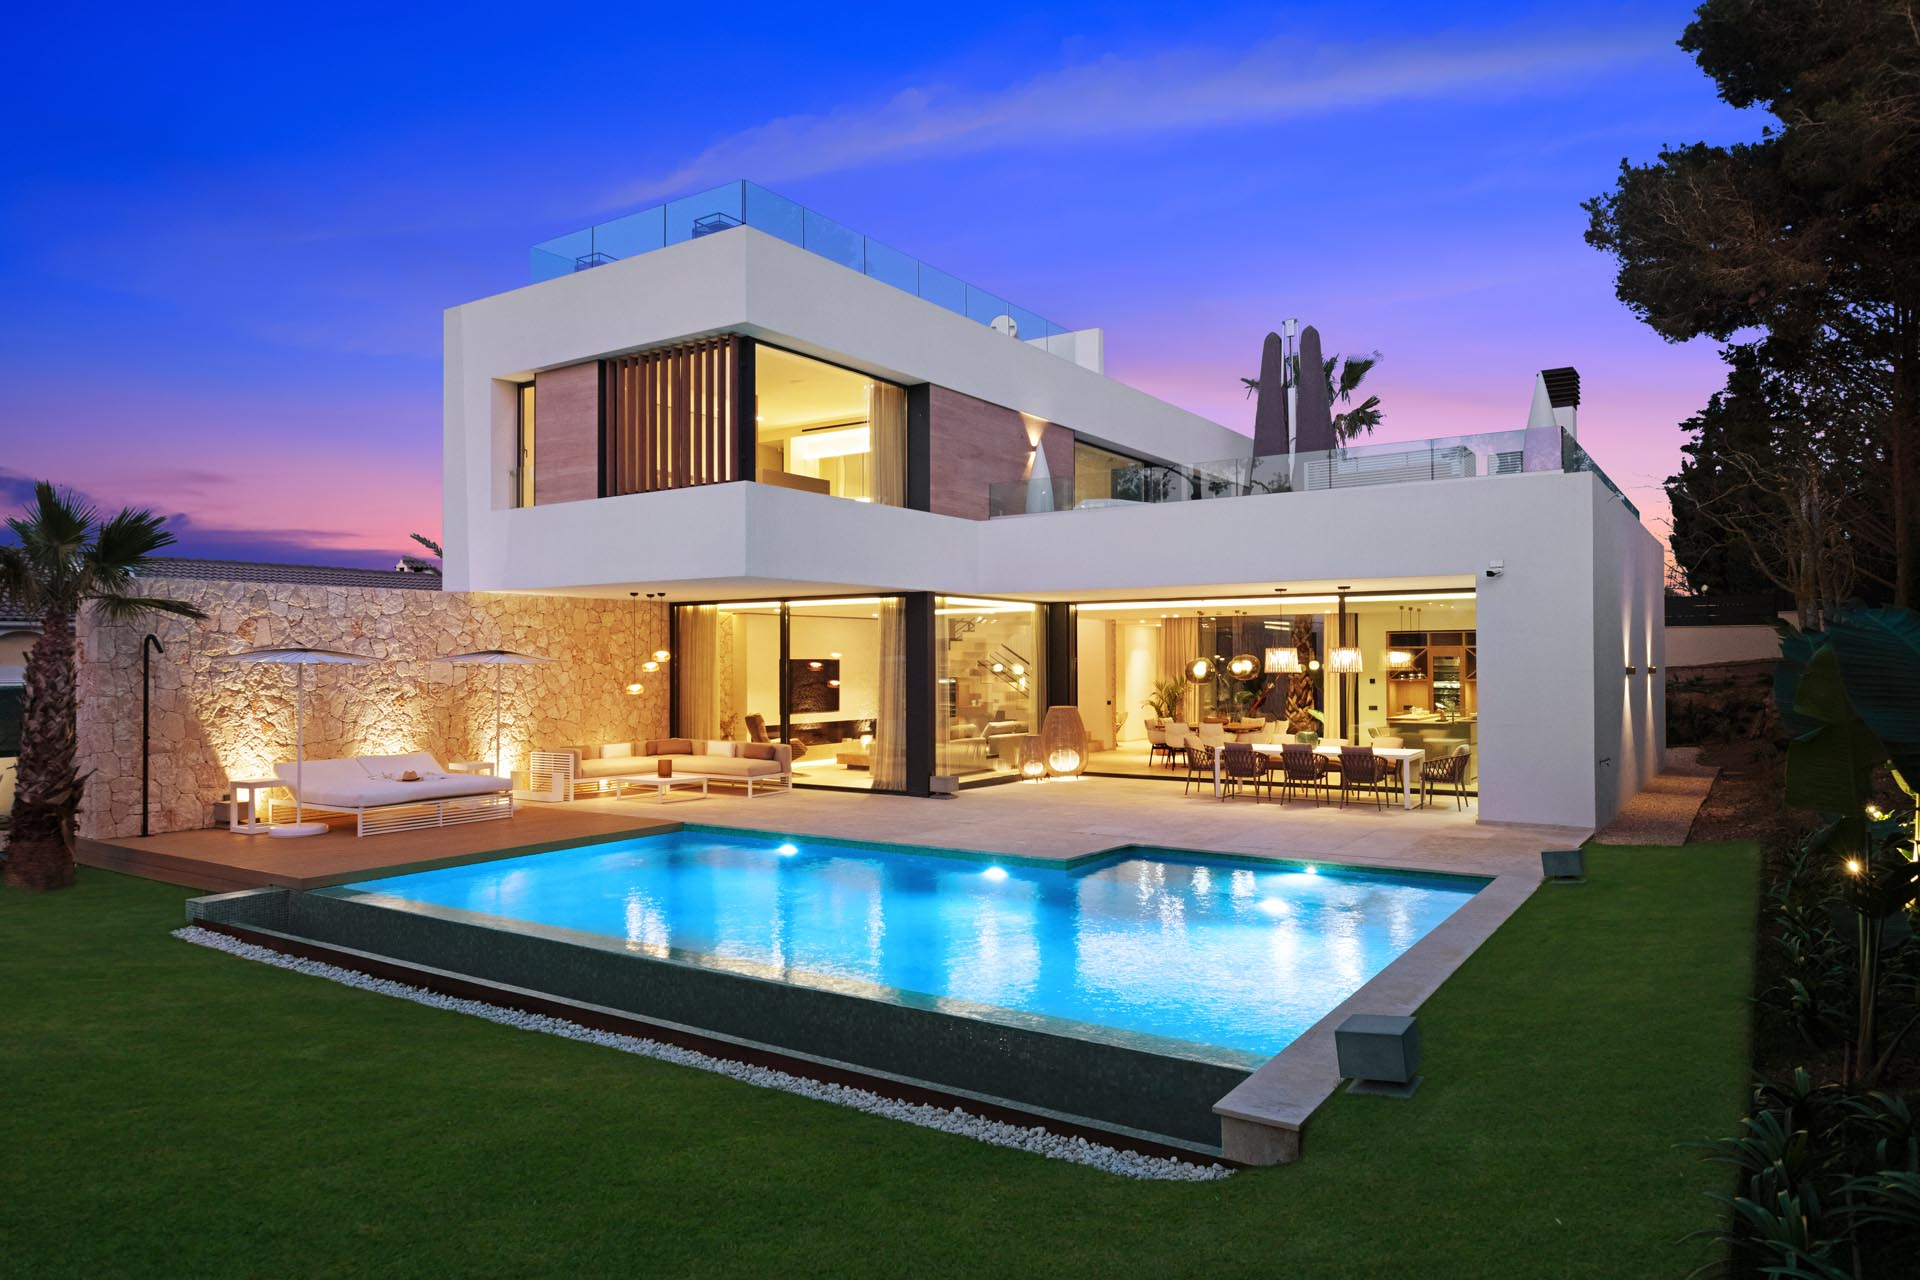 A modern home with stone walls and a swimming pool is designed for outdoor entertaining.